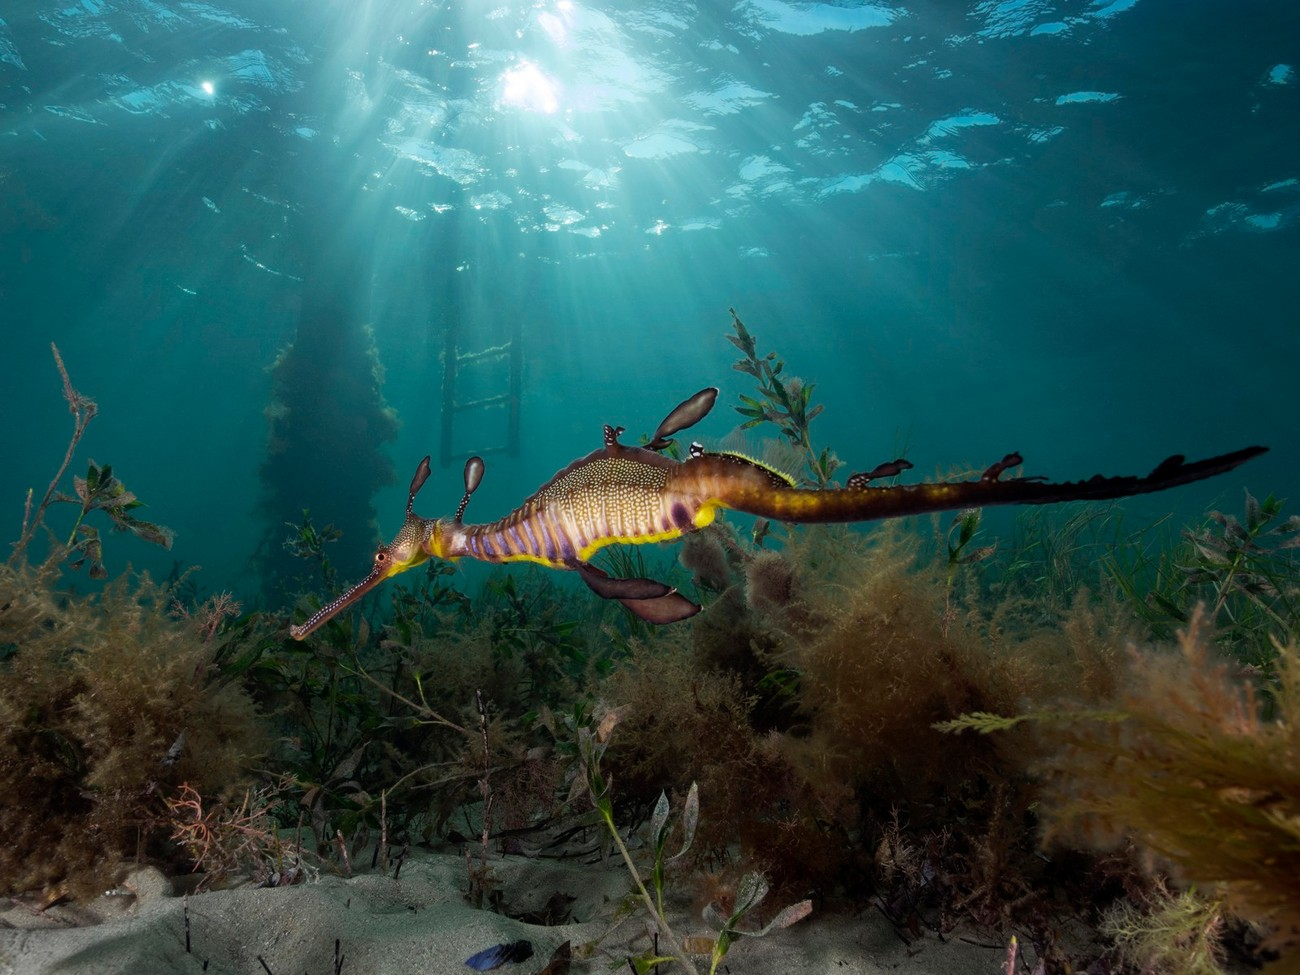 Underwater Photography: Must Know Tips